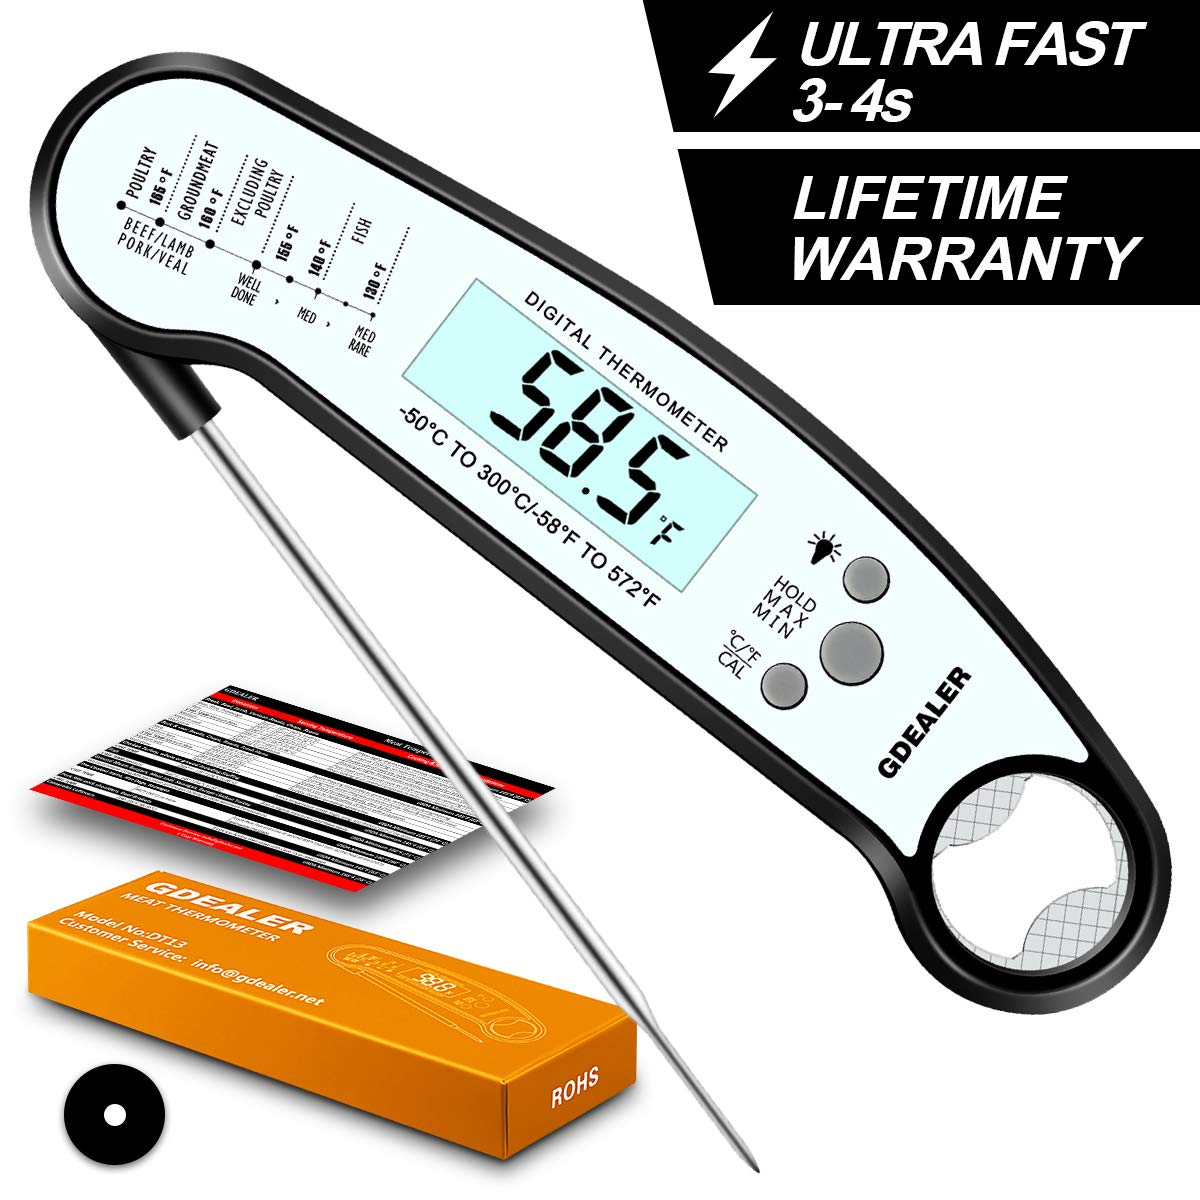 GDEALER DT13 Digital Waterproof Instant Read Meat Thermometer with Backlight Calibration Bottle Opener for Kitchen Cooking Candy Food Grilling BBQ Baking Oil Deep Fly by GDEALER